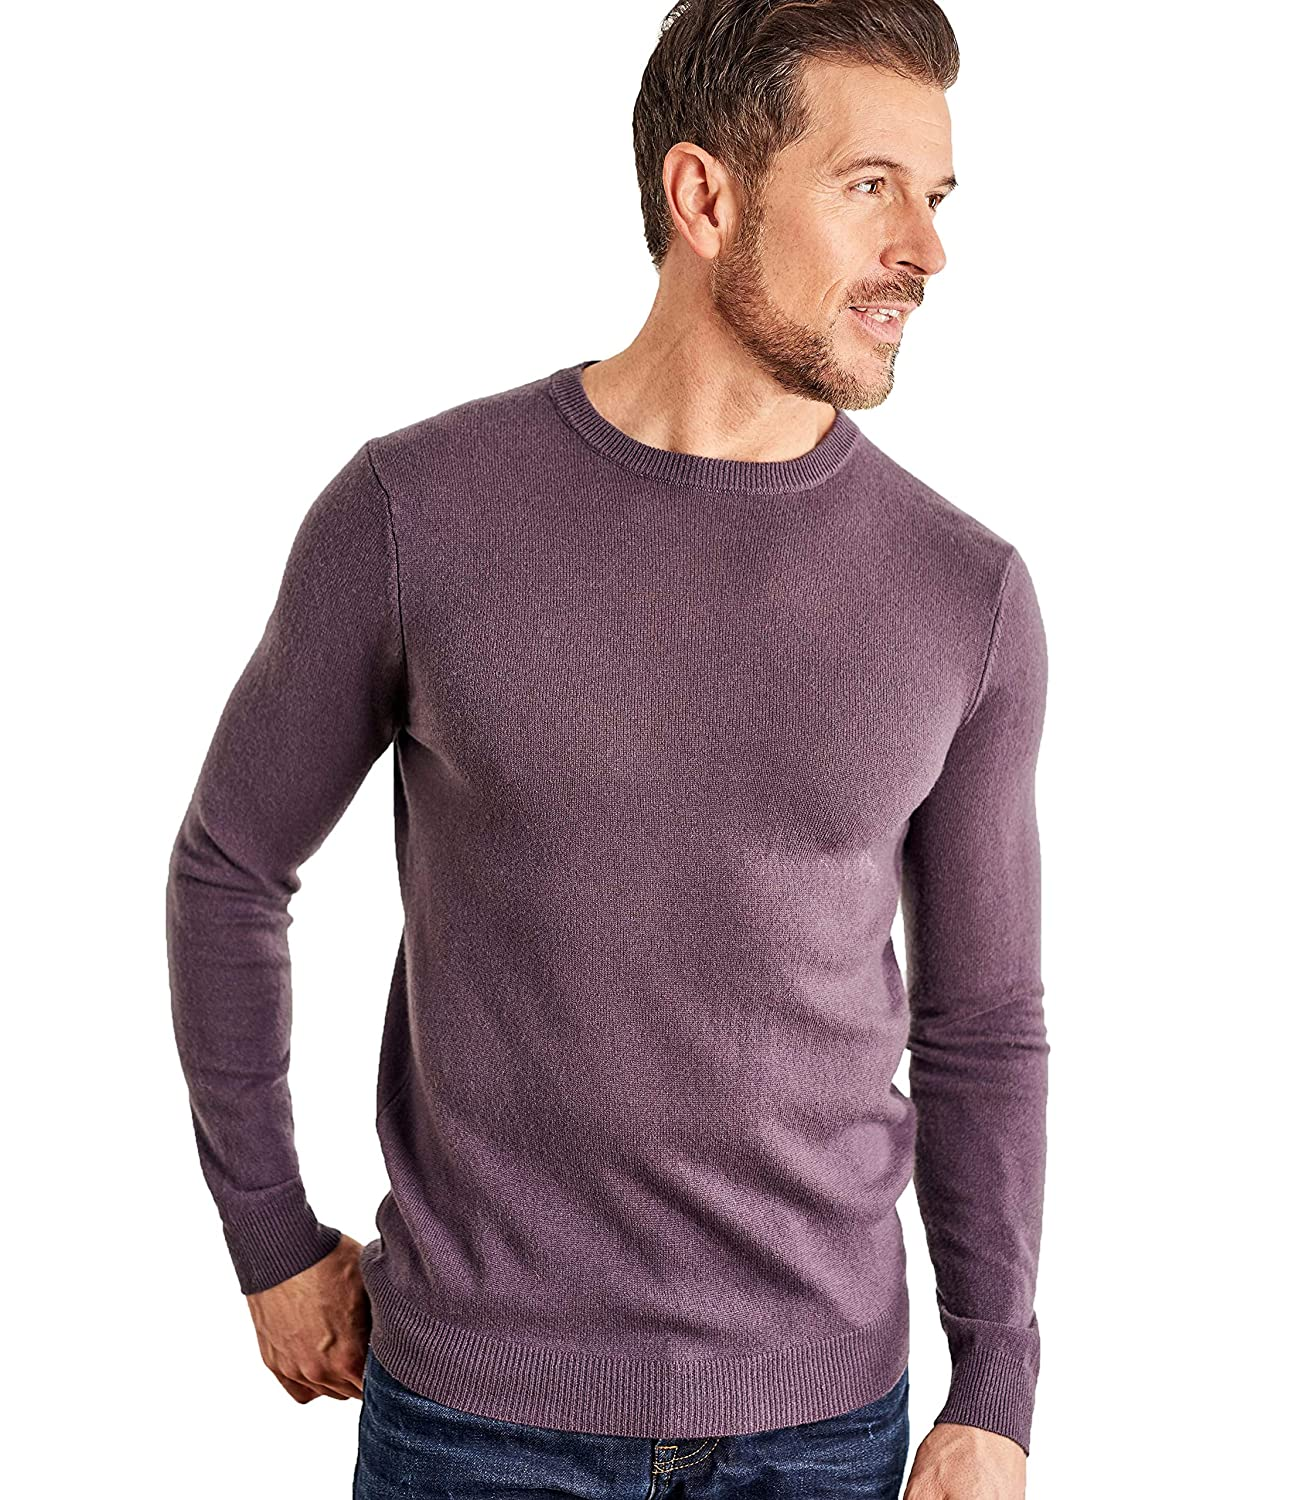 Woolovers Mens Cashmere and Merino Crew Neck Knitted Jumper Violet Mocha, XL